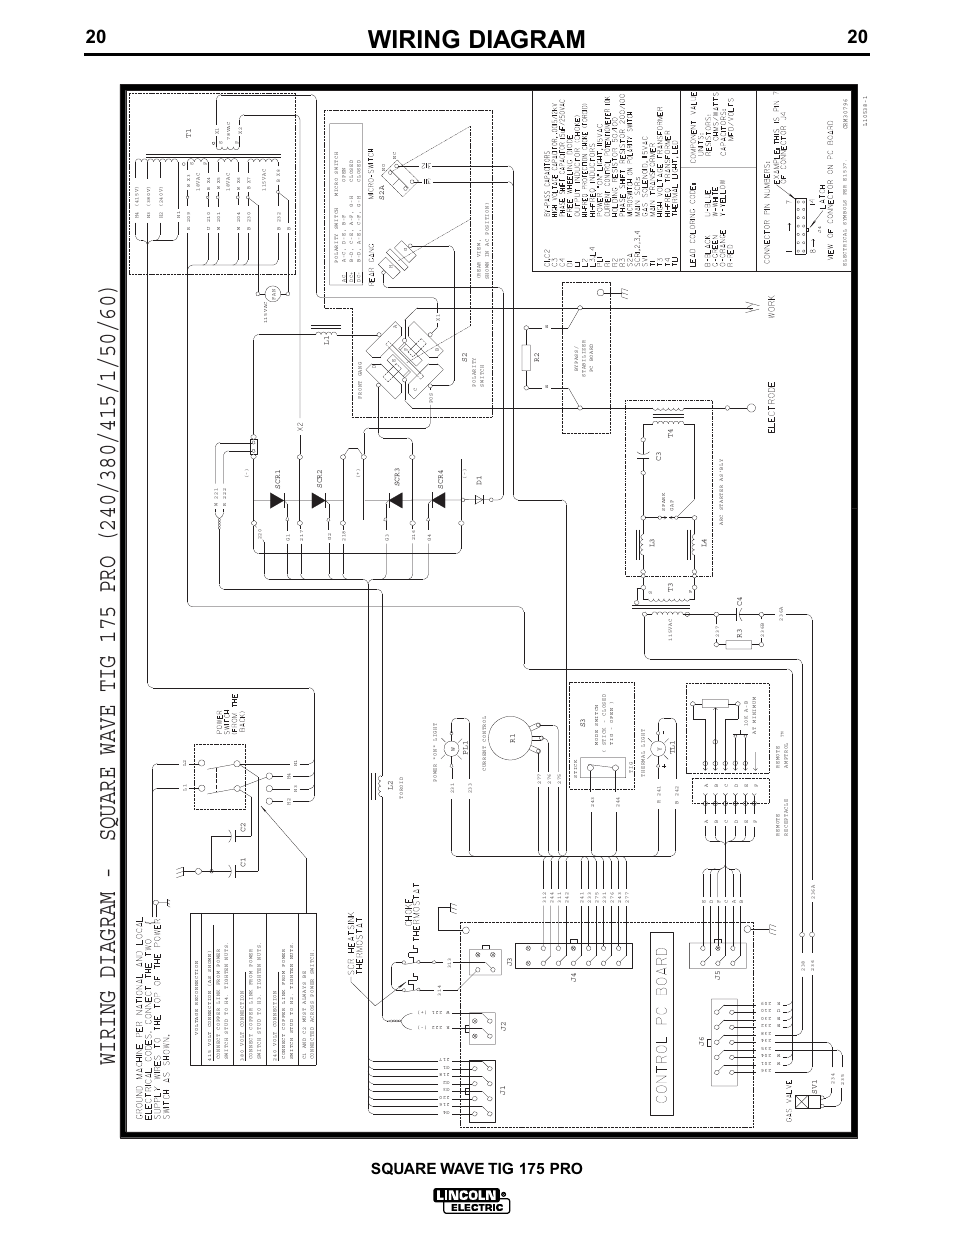 Wiring Diagram  Square Wave Tig 175 Pro